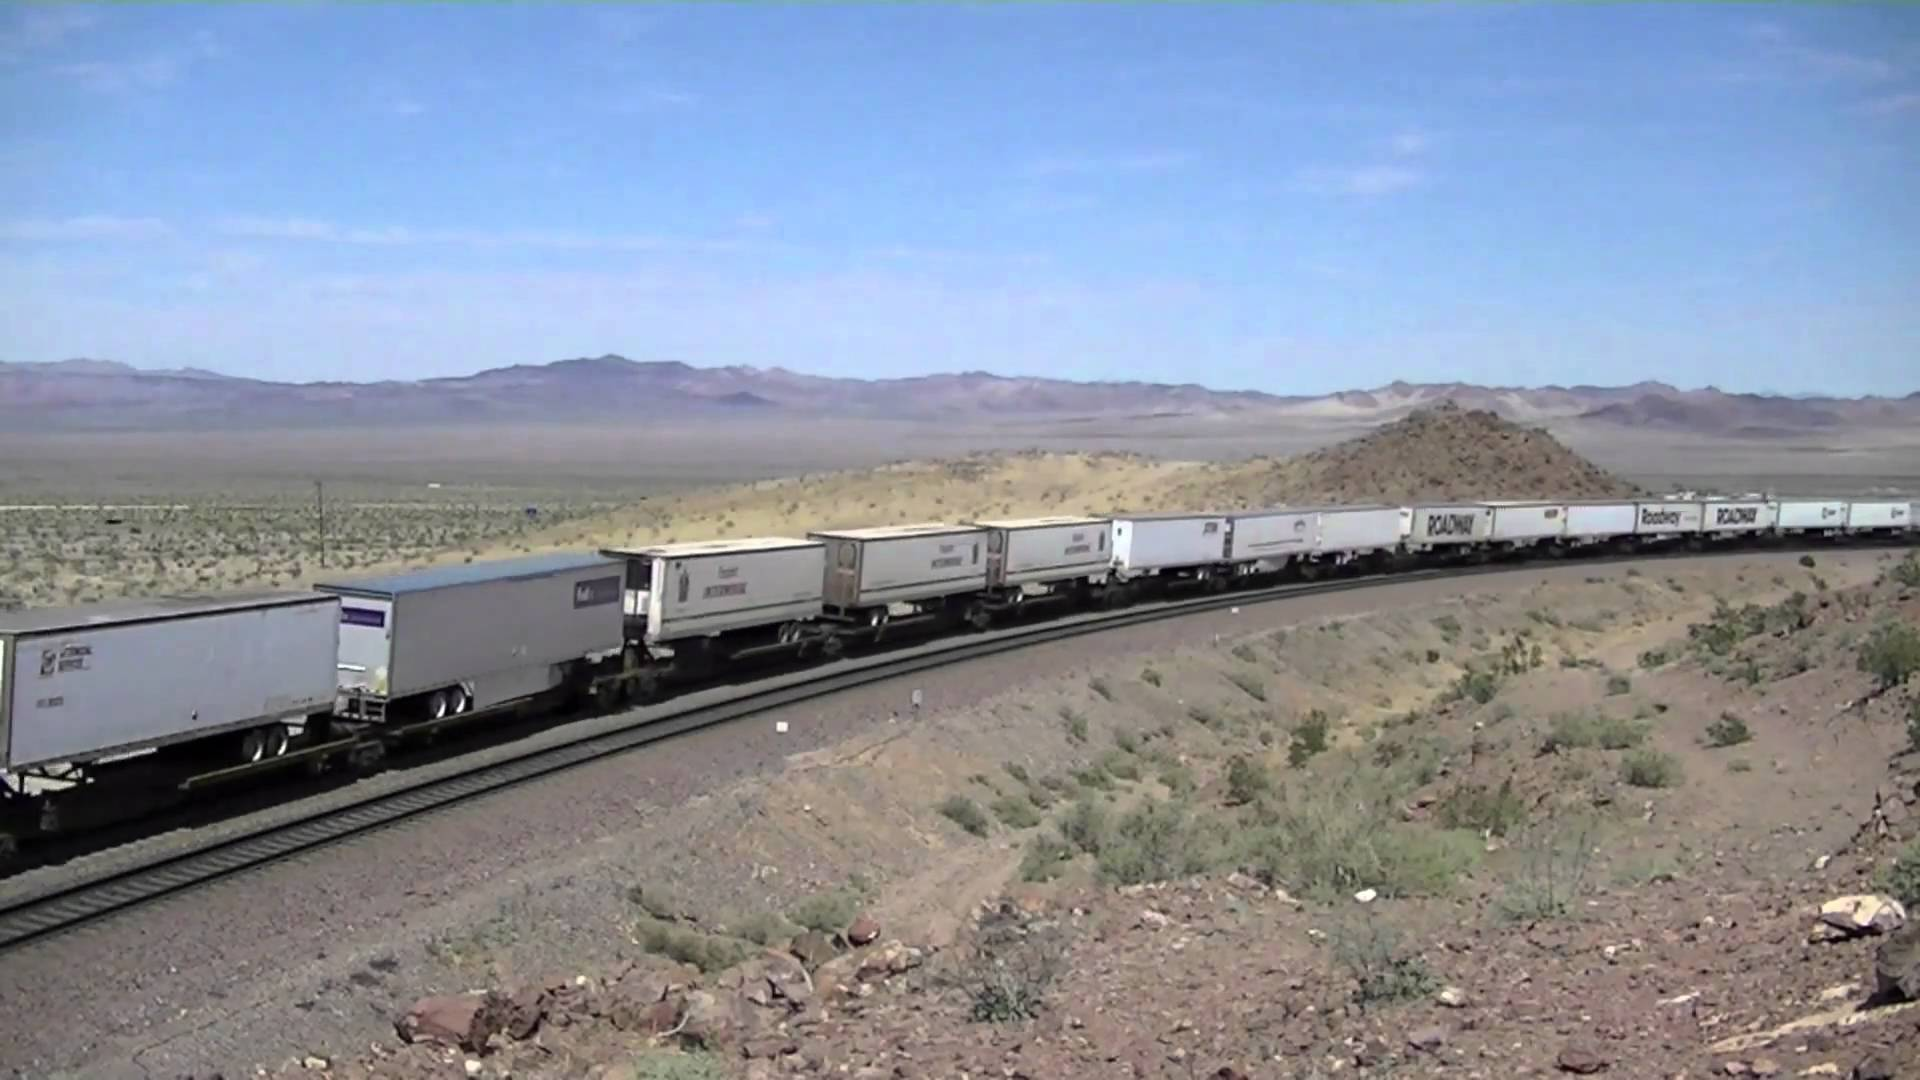 Transportation Company - TTX Trailer Train - Railroad Equipment